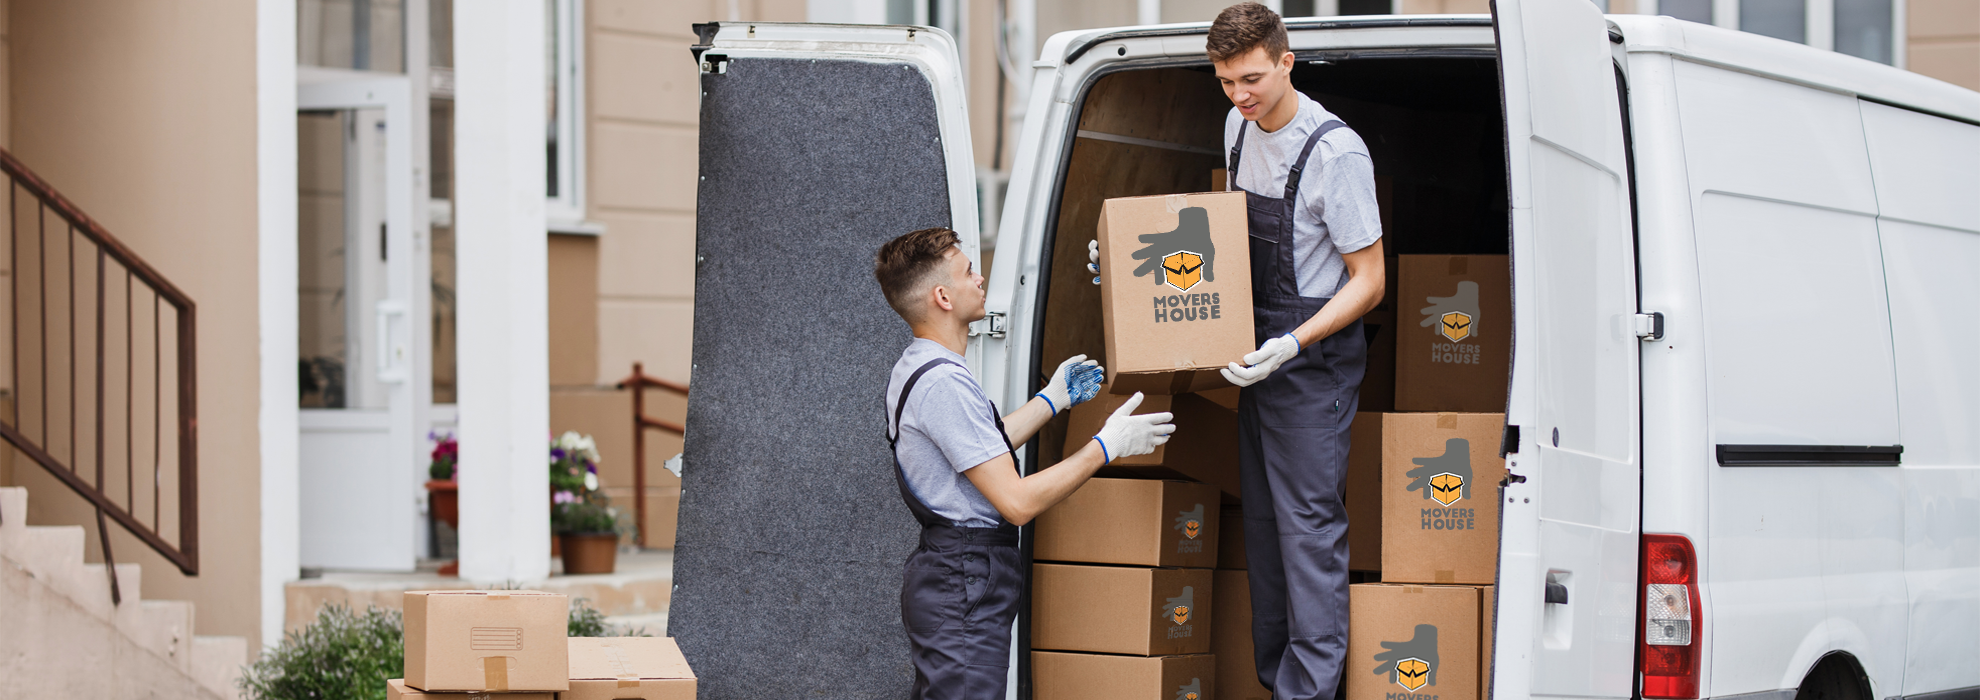 Professional moving company have Affordable Relocation services